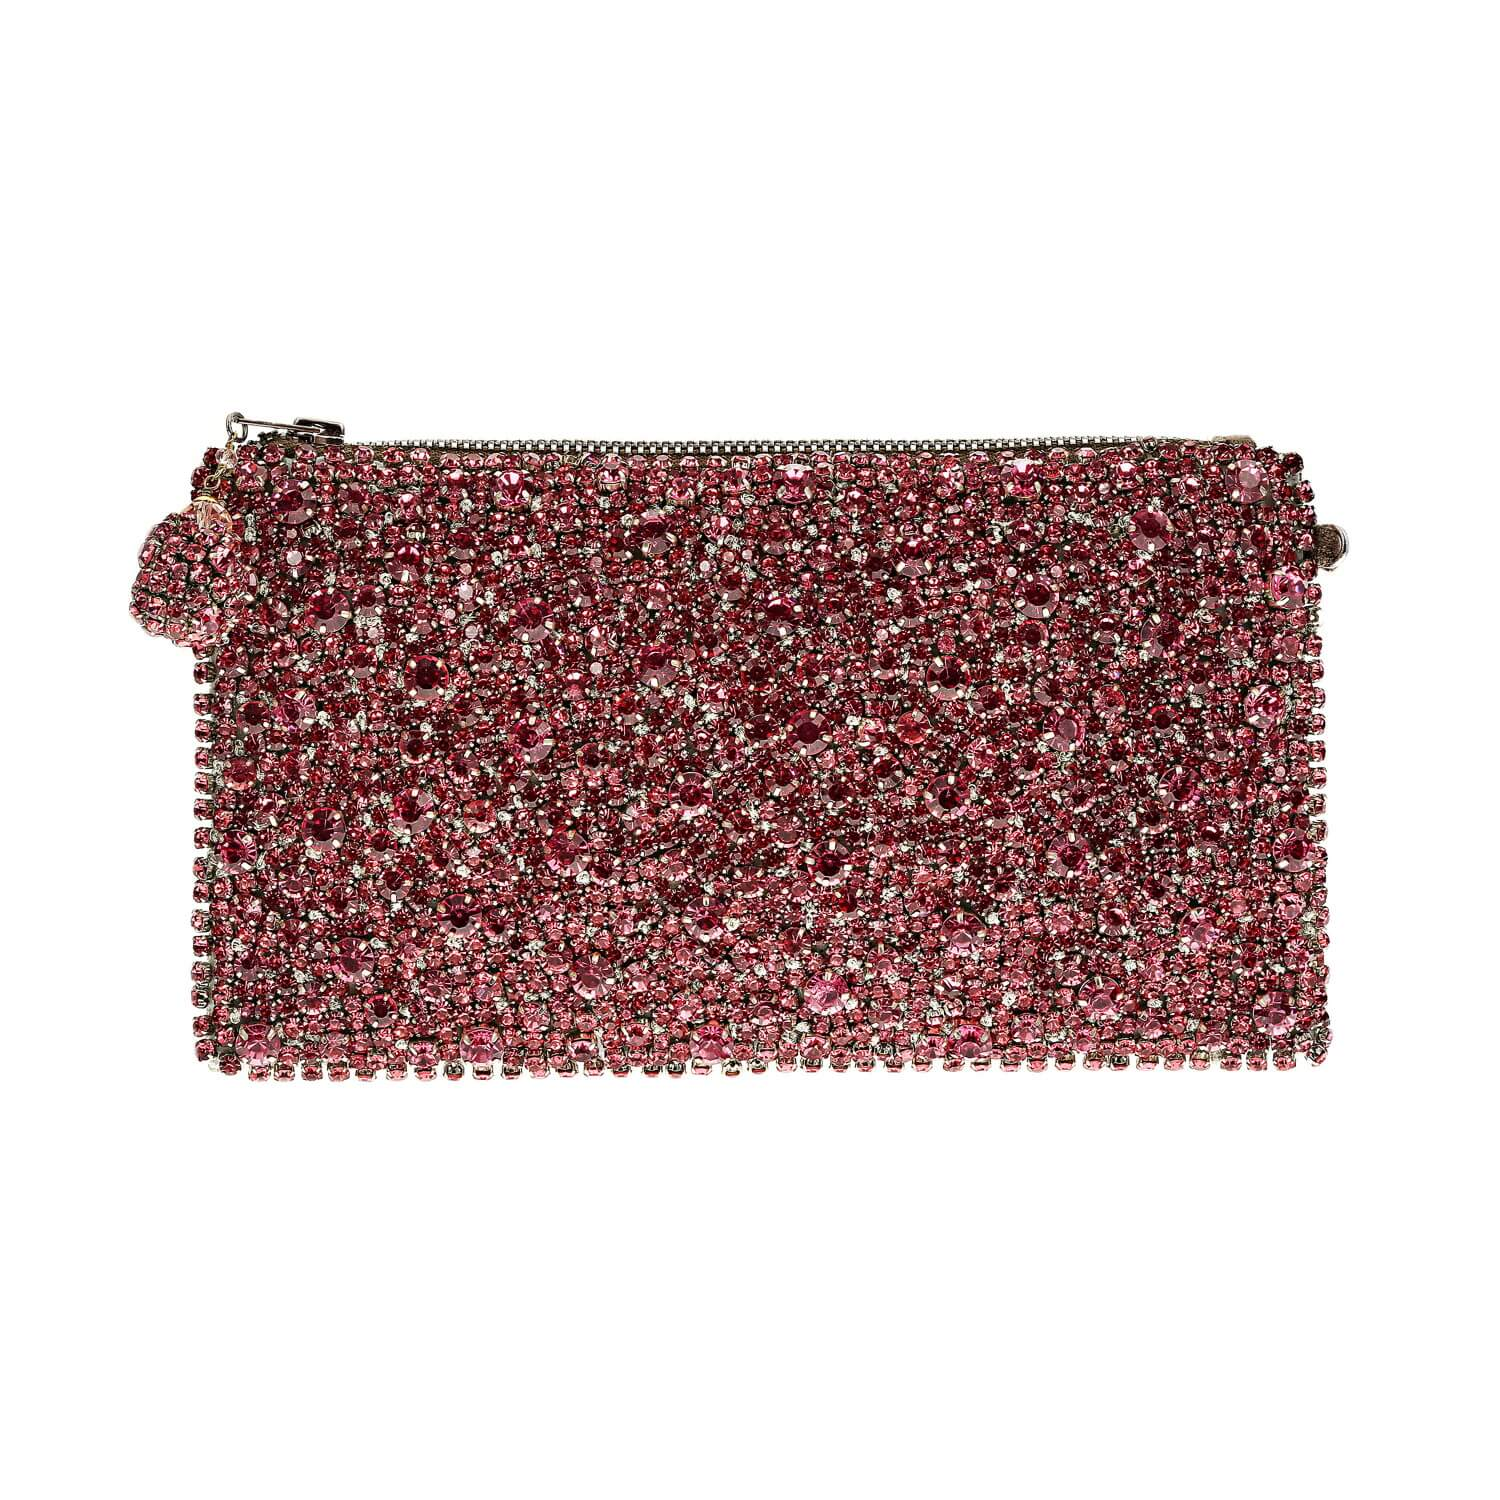 Matilda Rose Clutch